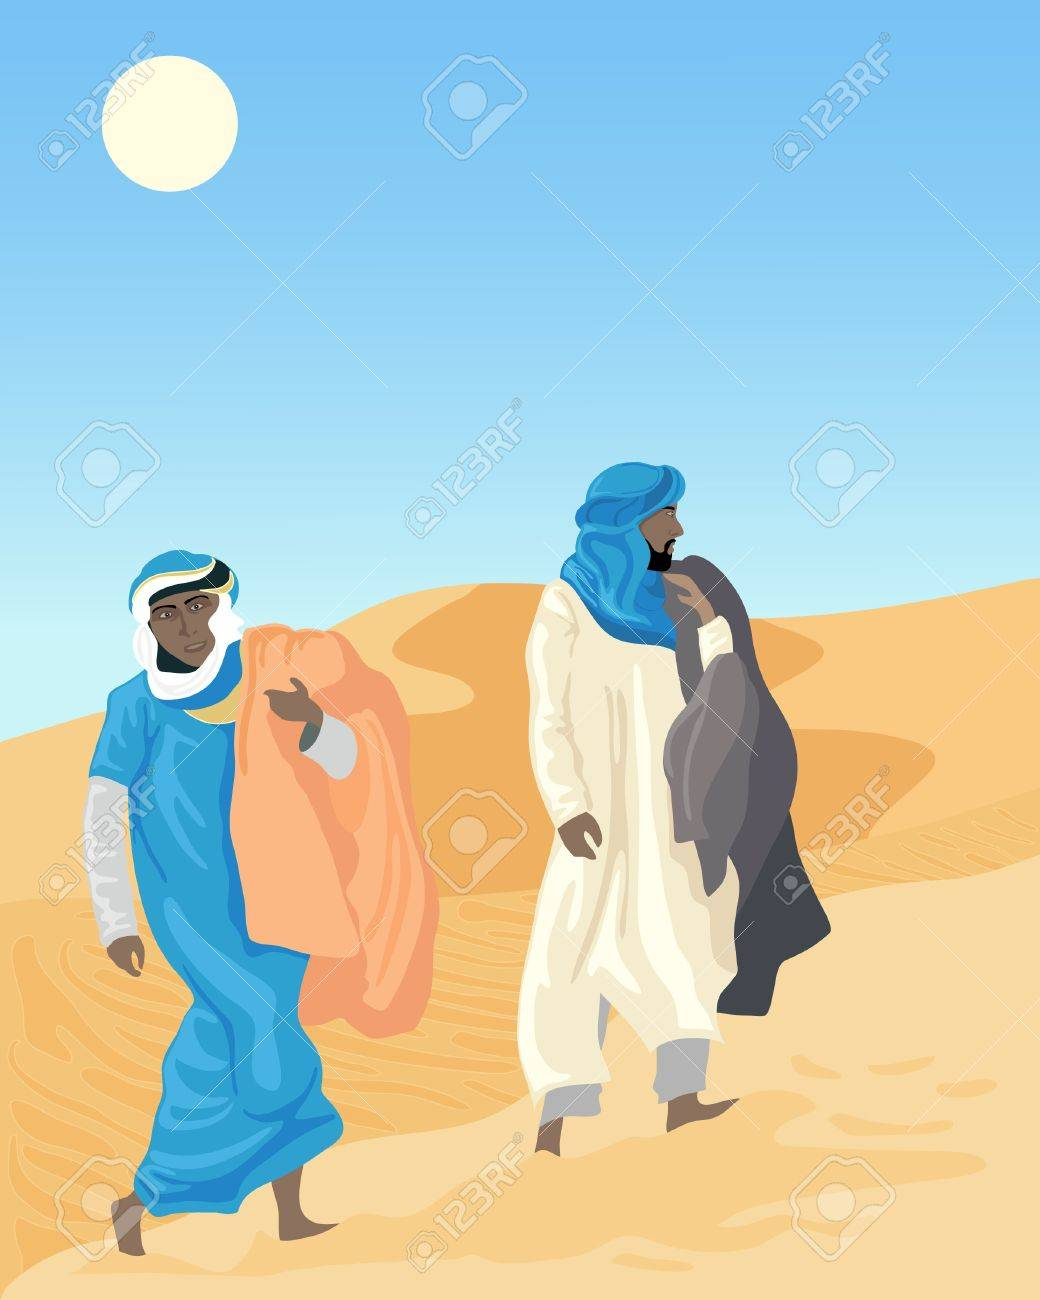 an illustration of two bedouins walking through sand dunes with blankets under a hot sun - 10505643